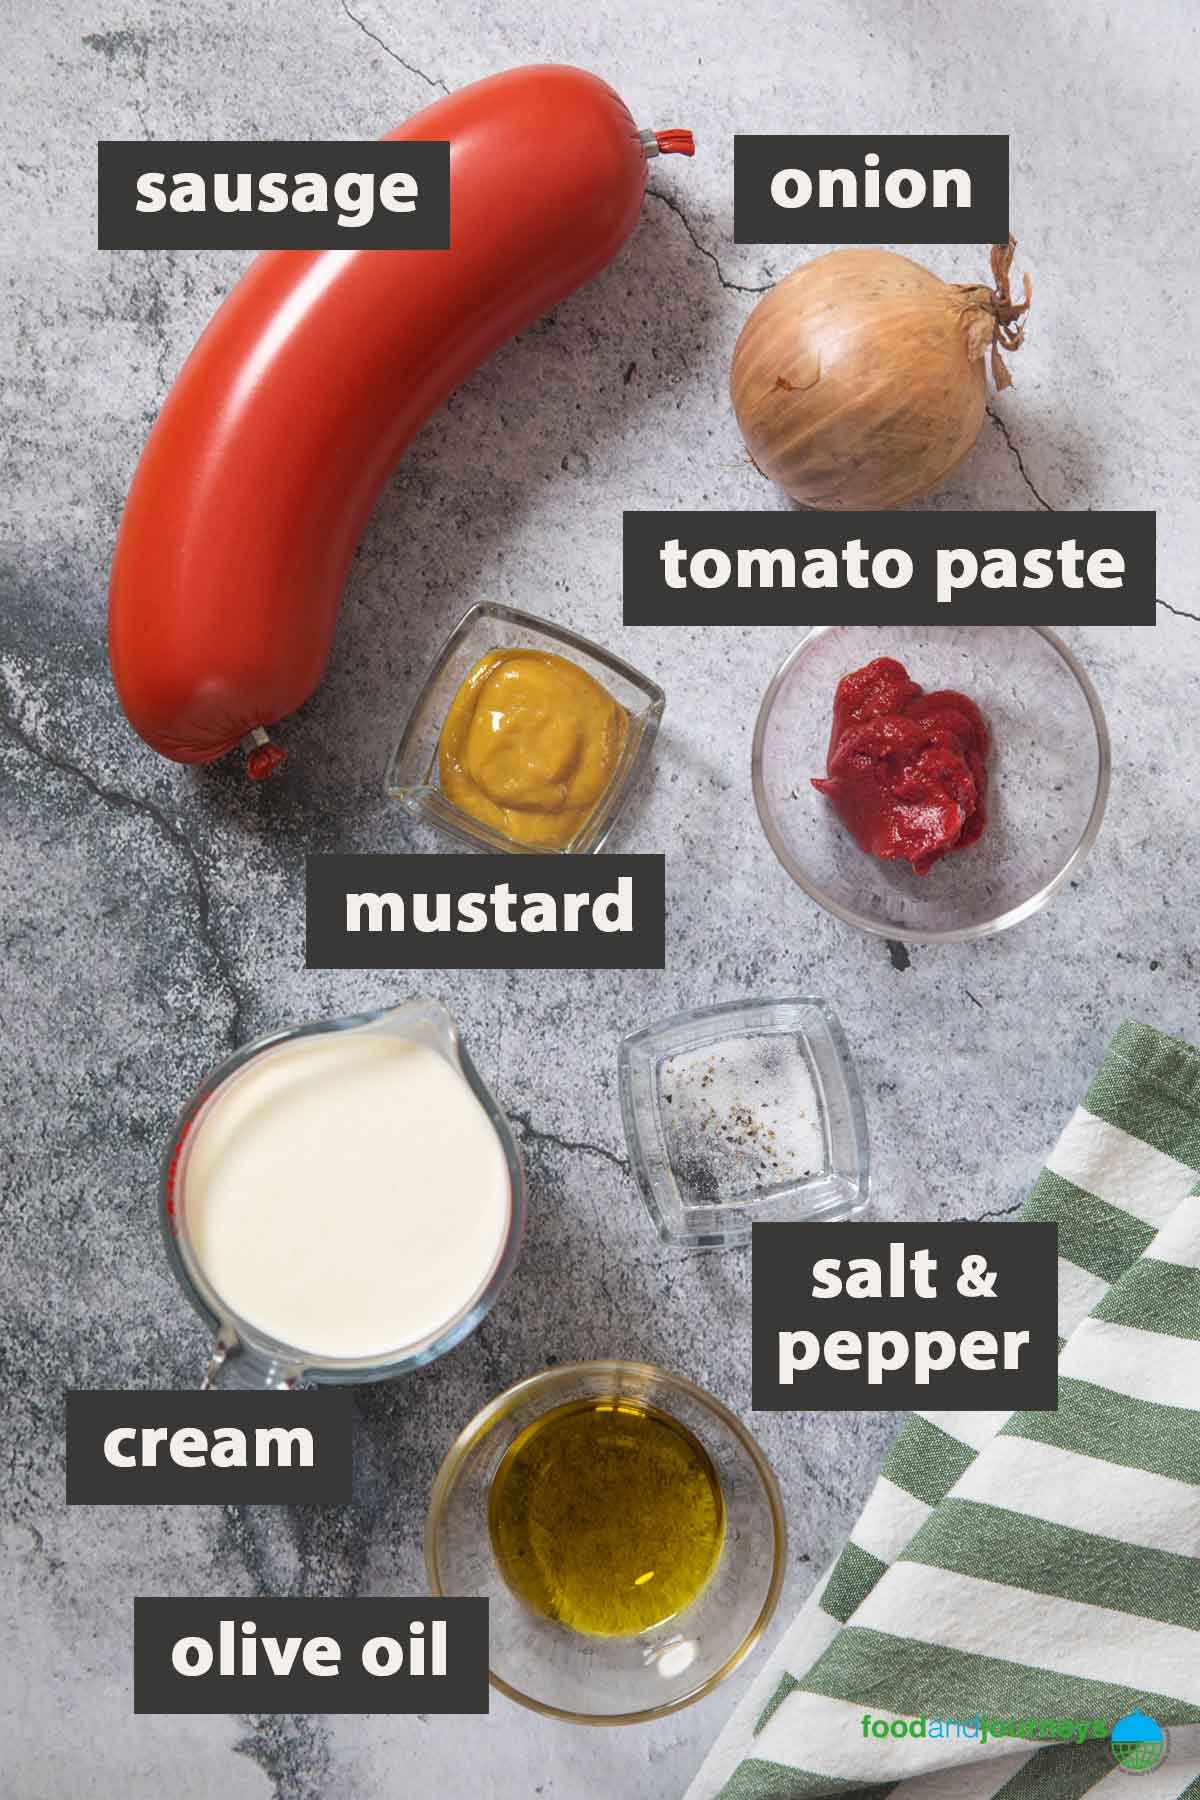 An image showing all the ingredients you need for making sausage stroganoff at home.